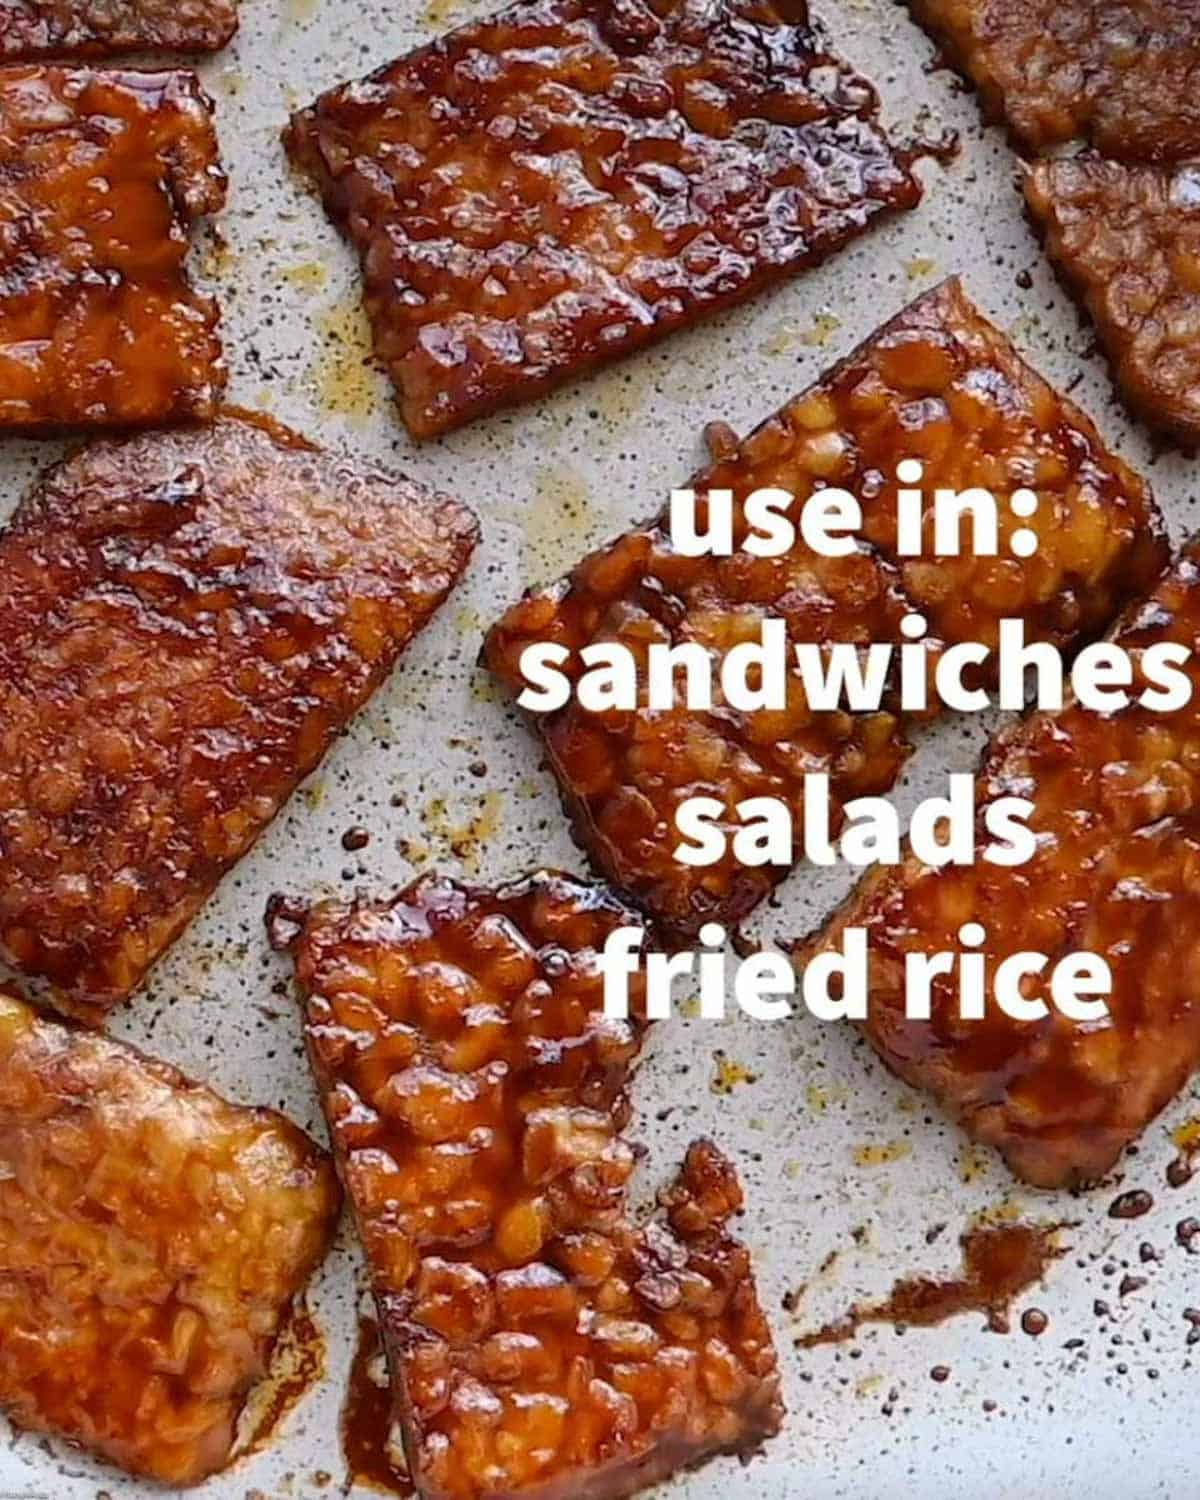 Pan fried tempeh slices in a saucy, red marinade.